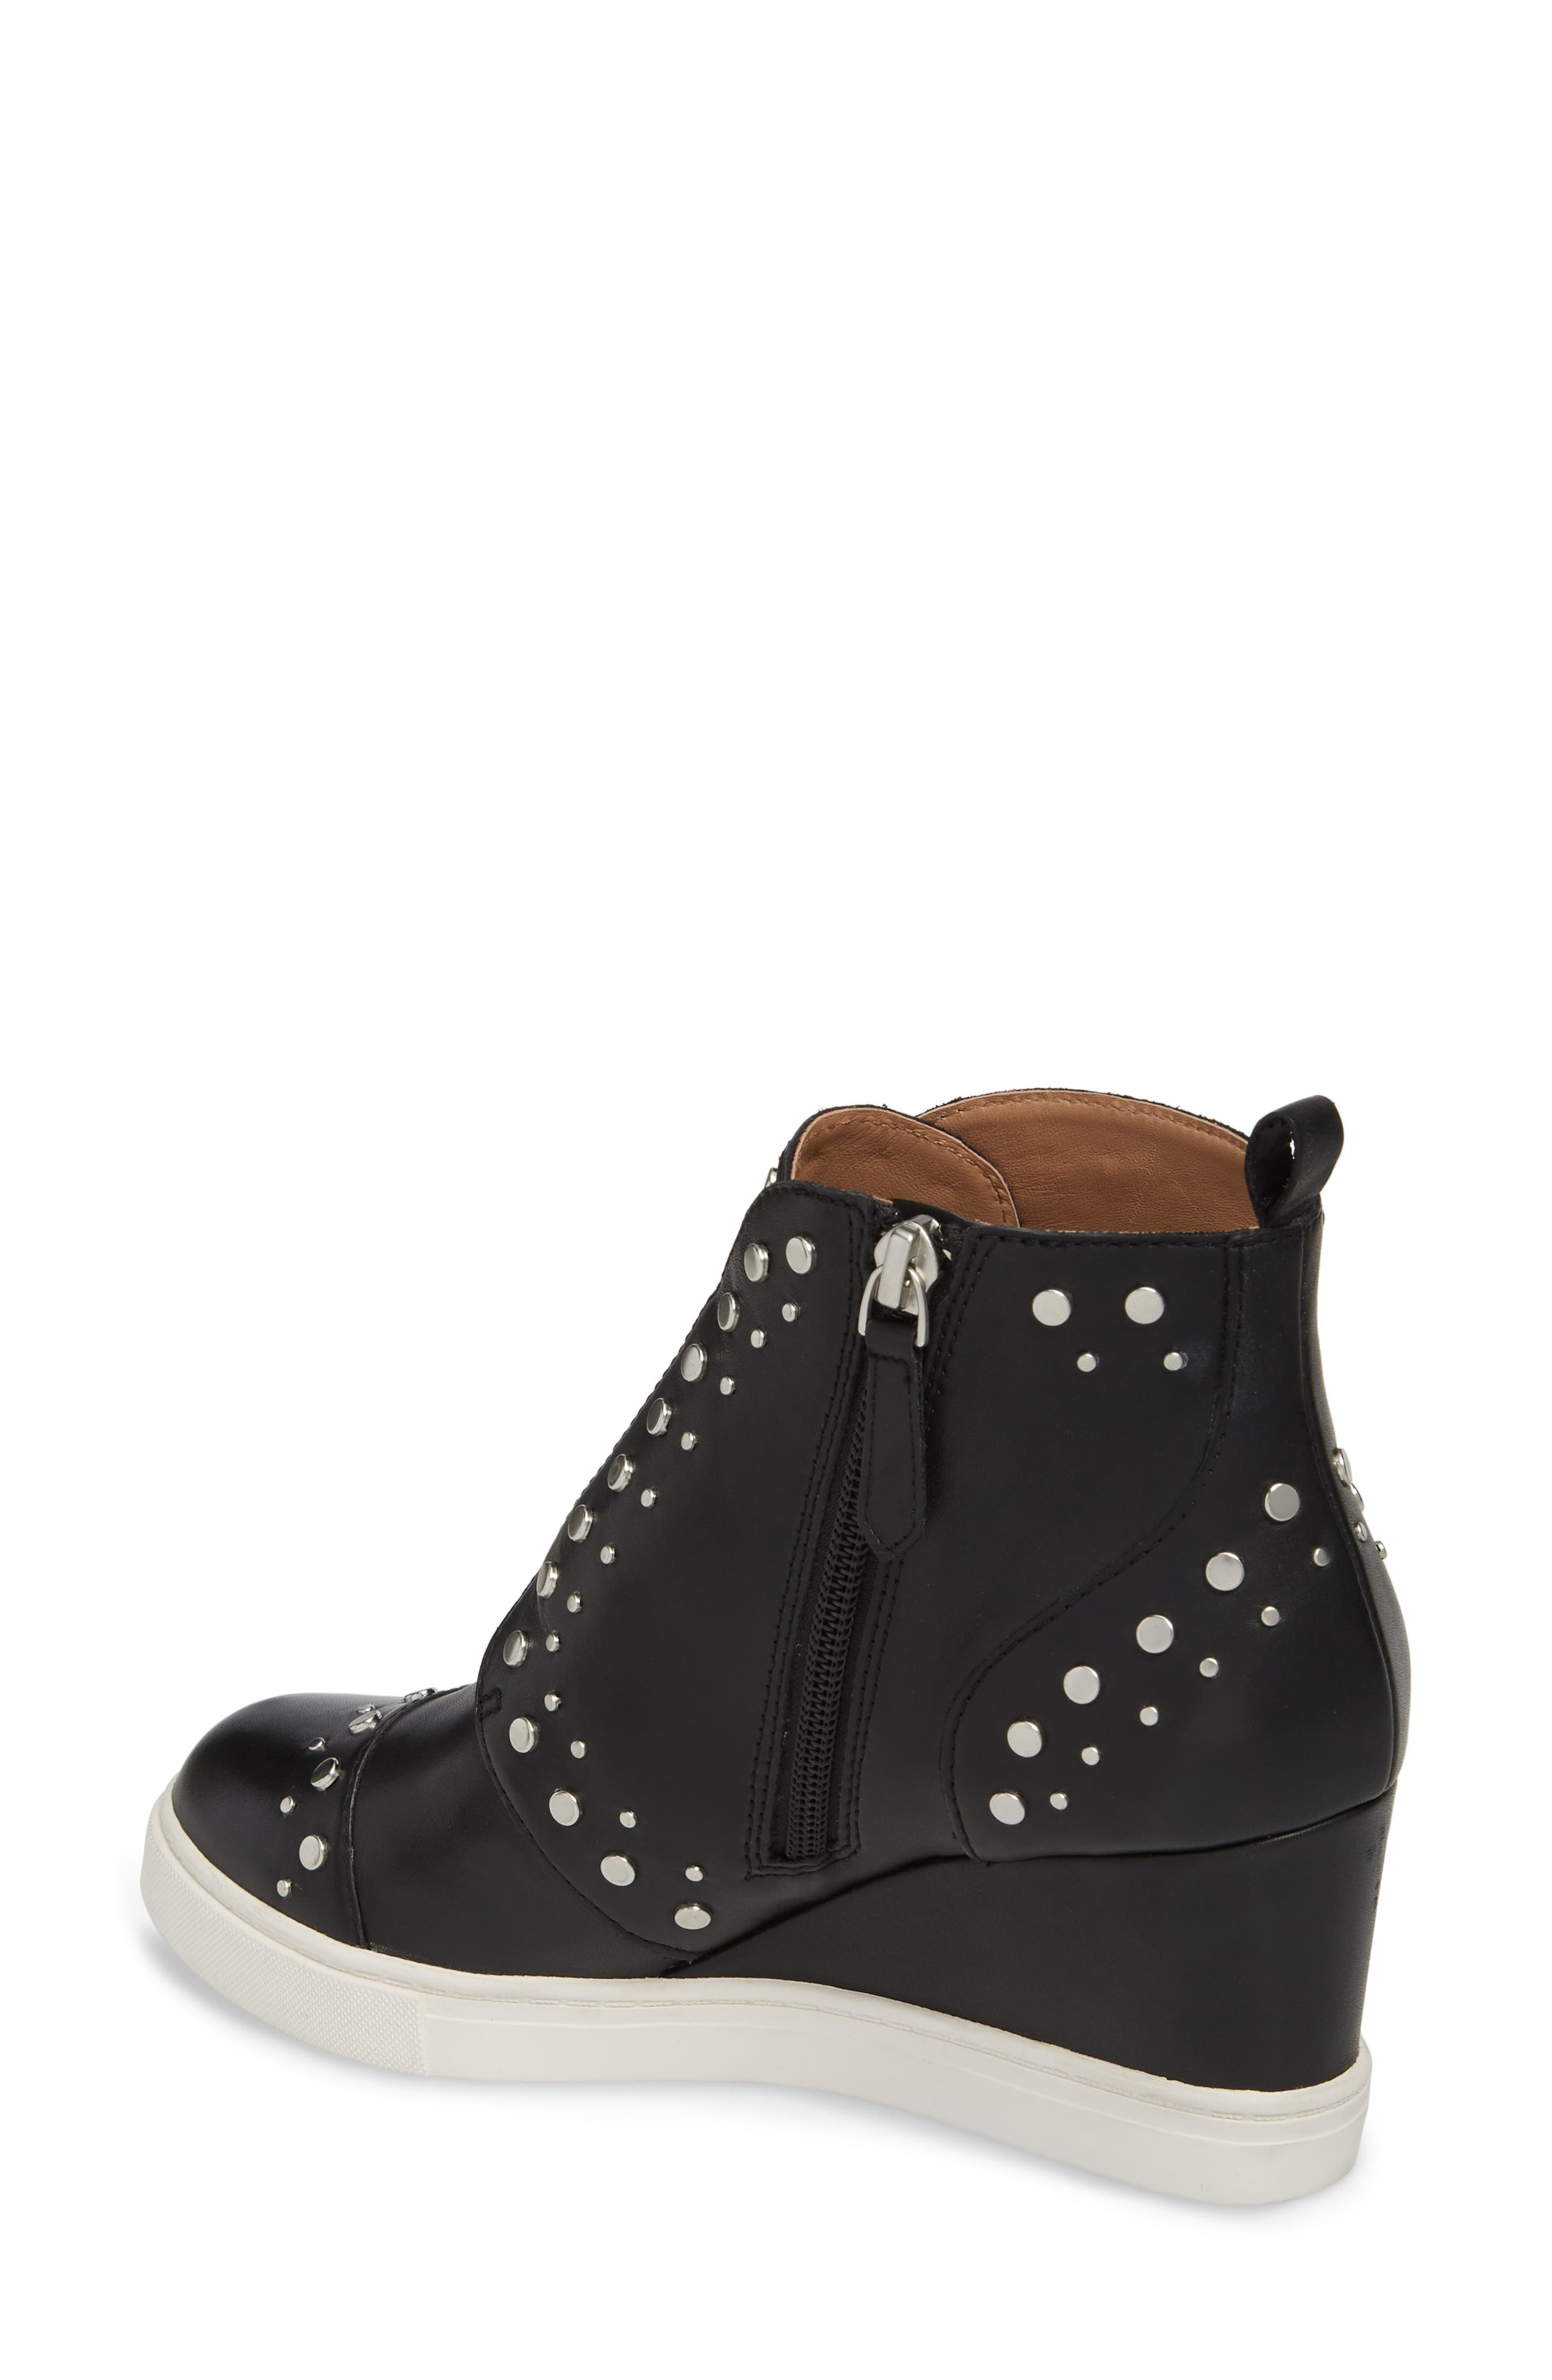 LINEA PAOLO, Felicity Wedge Sneaker, Alternate thumbnail 2, color, BLACK LEATHER